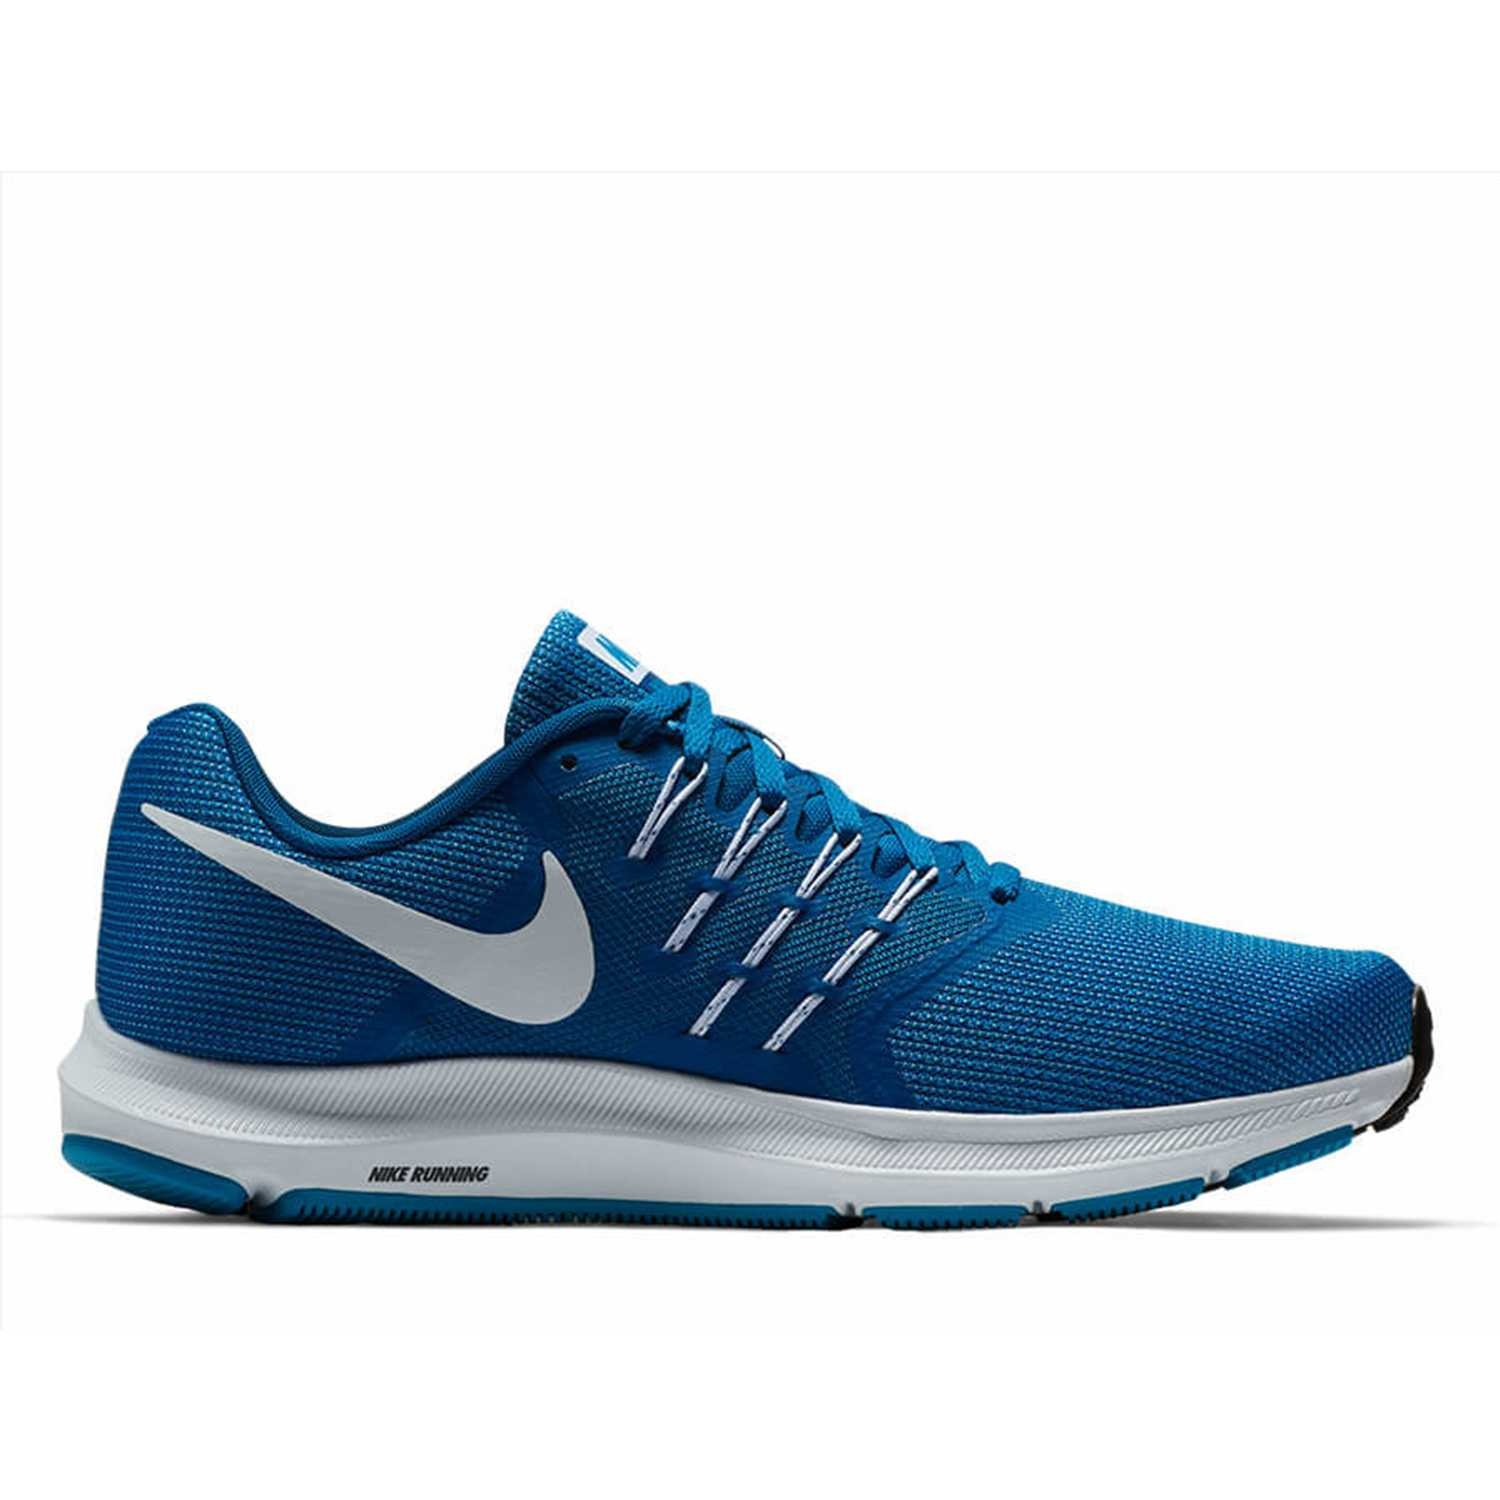 huge selection of 5a1fd a8b12 Zapatilla de Hombre Nike Azul  Blanco run swift